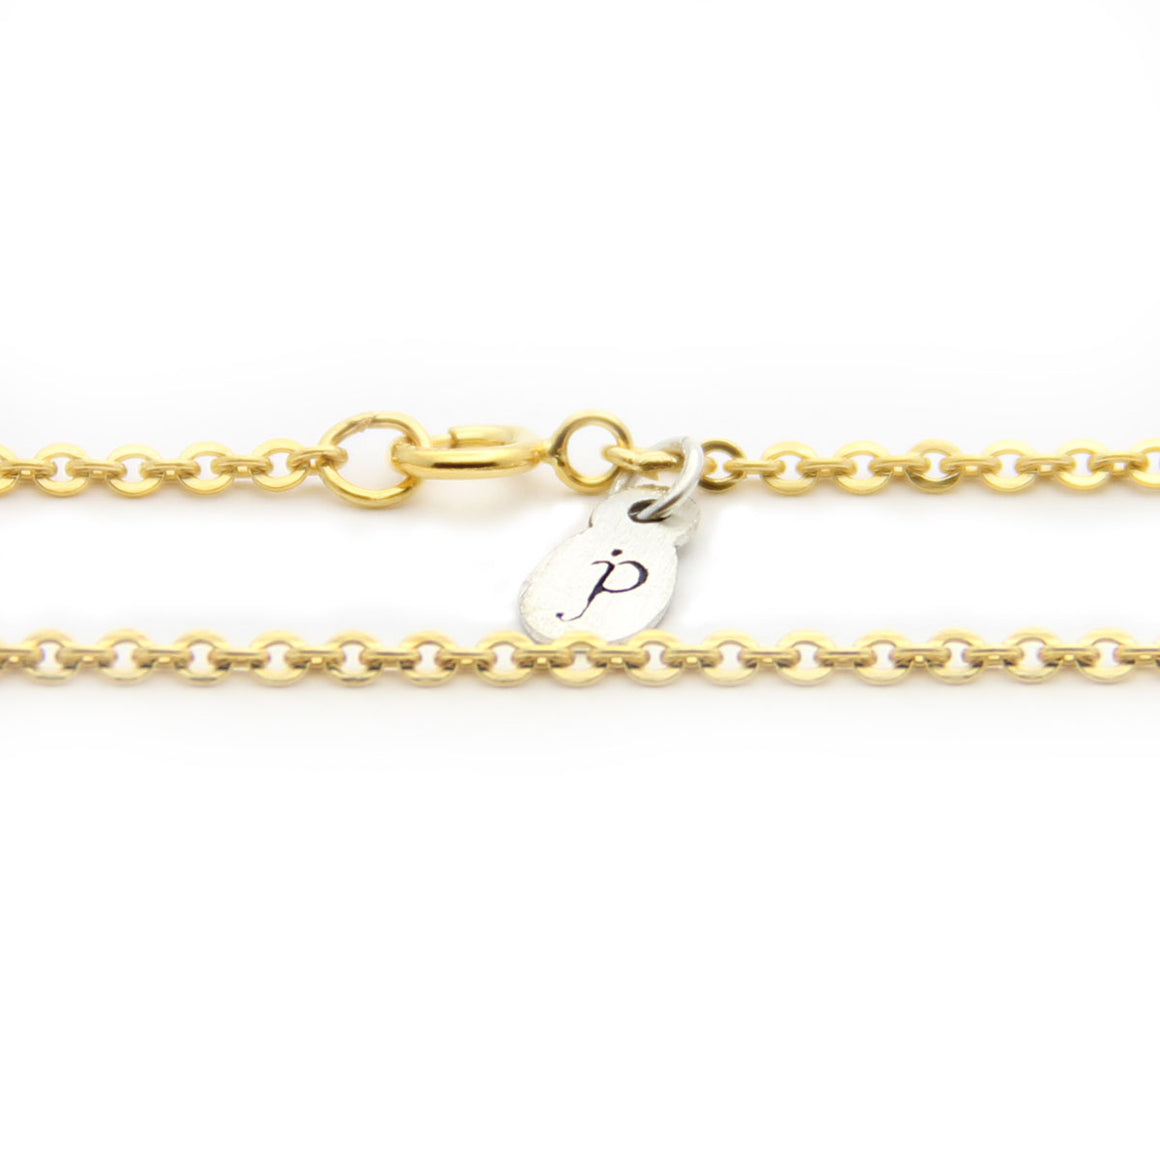 gold cable chain length option, gold chain necklace add on, design your own jewelry, jenny present®